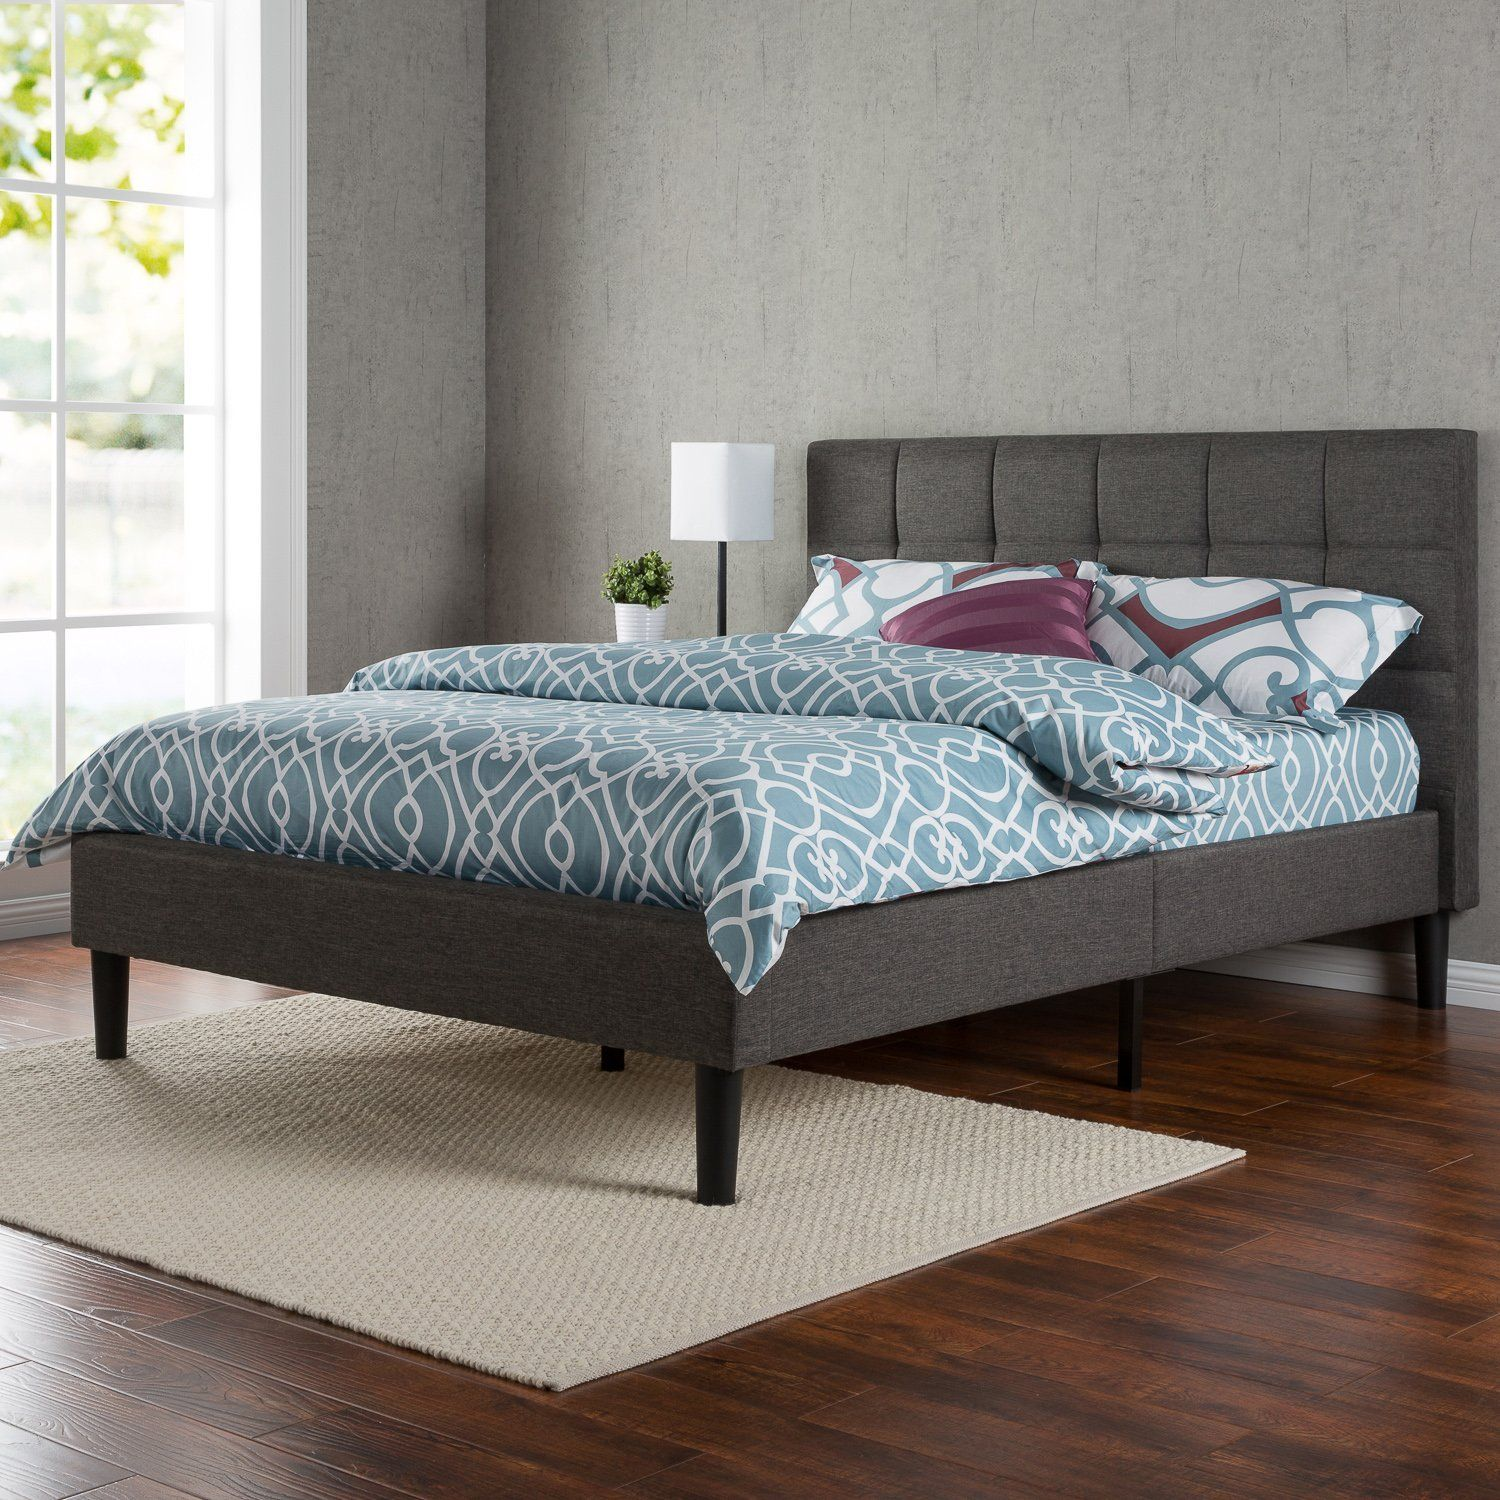 Zinus upholstered square stitched platform bed with wooden slats queen style spacez